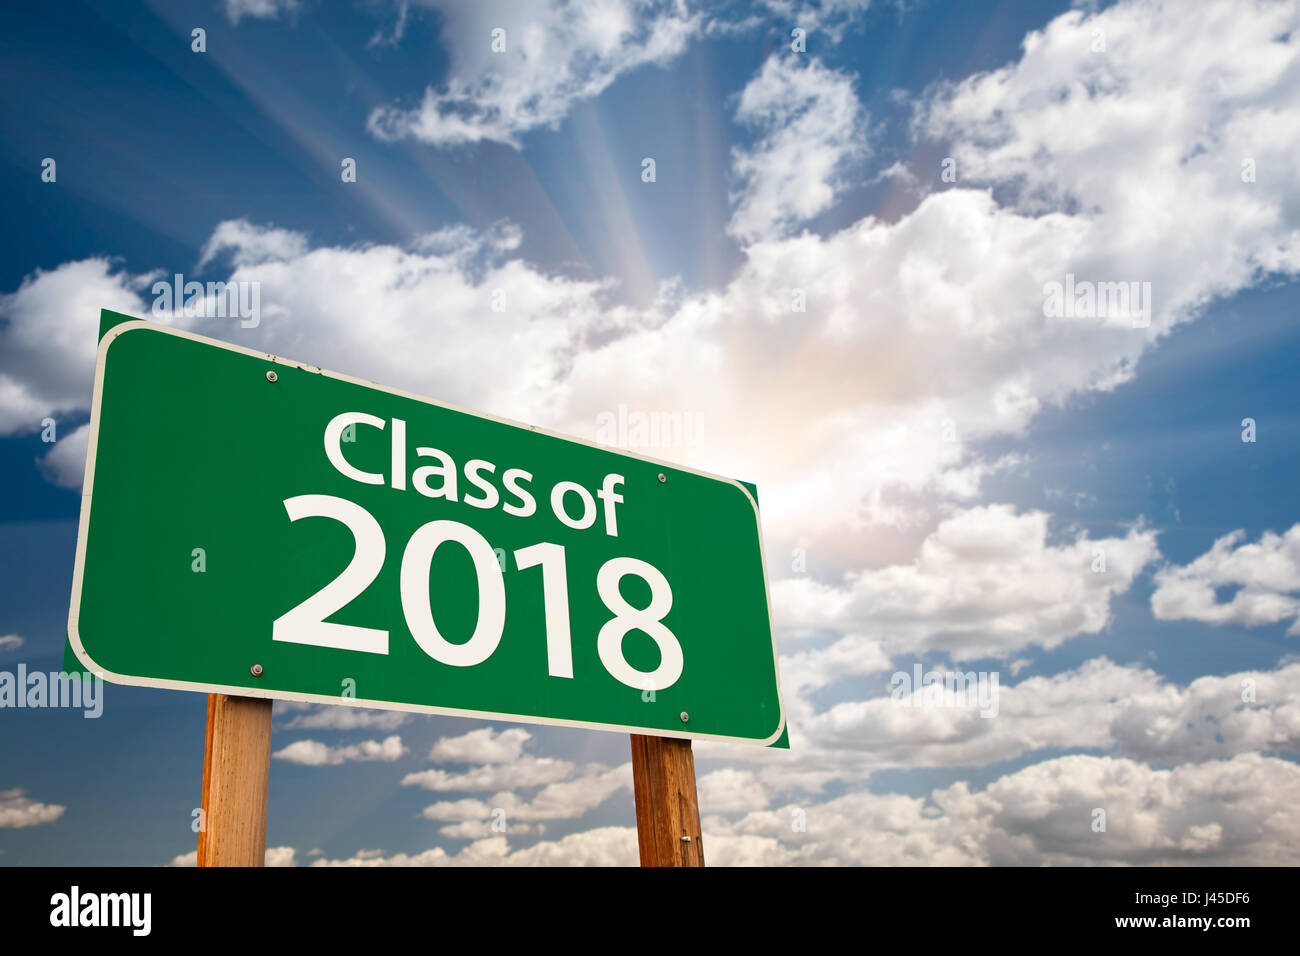 Class of 2018 Green Road Sign with Dramatic Clouds and Sky. Stock Photo